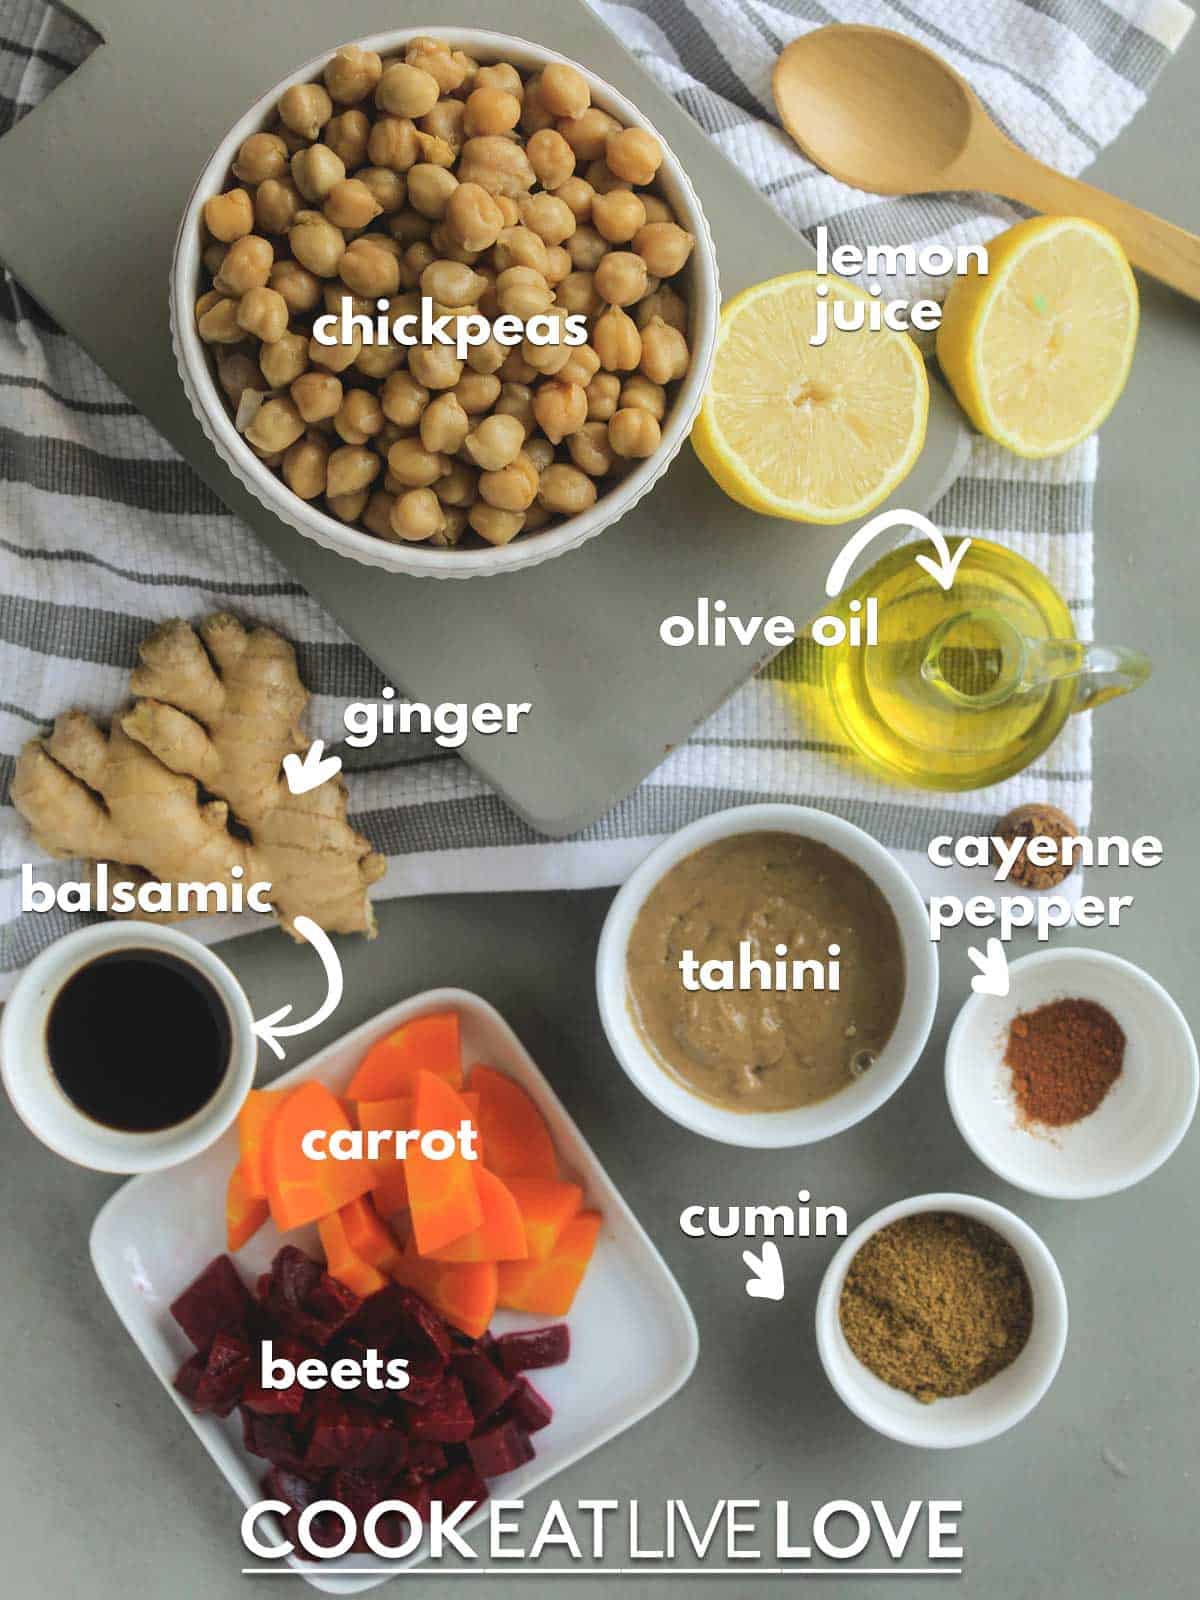 Ingredients to make veggie hummus on the table with text labels